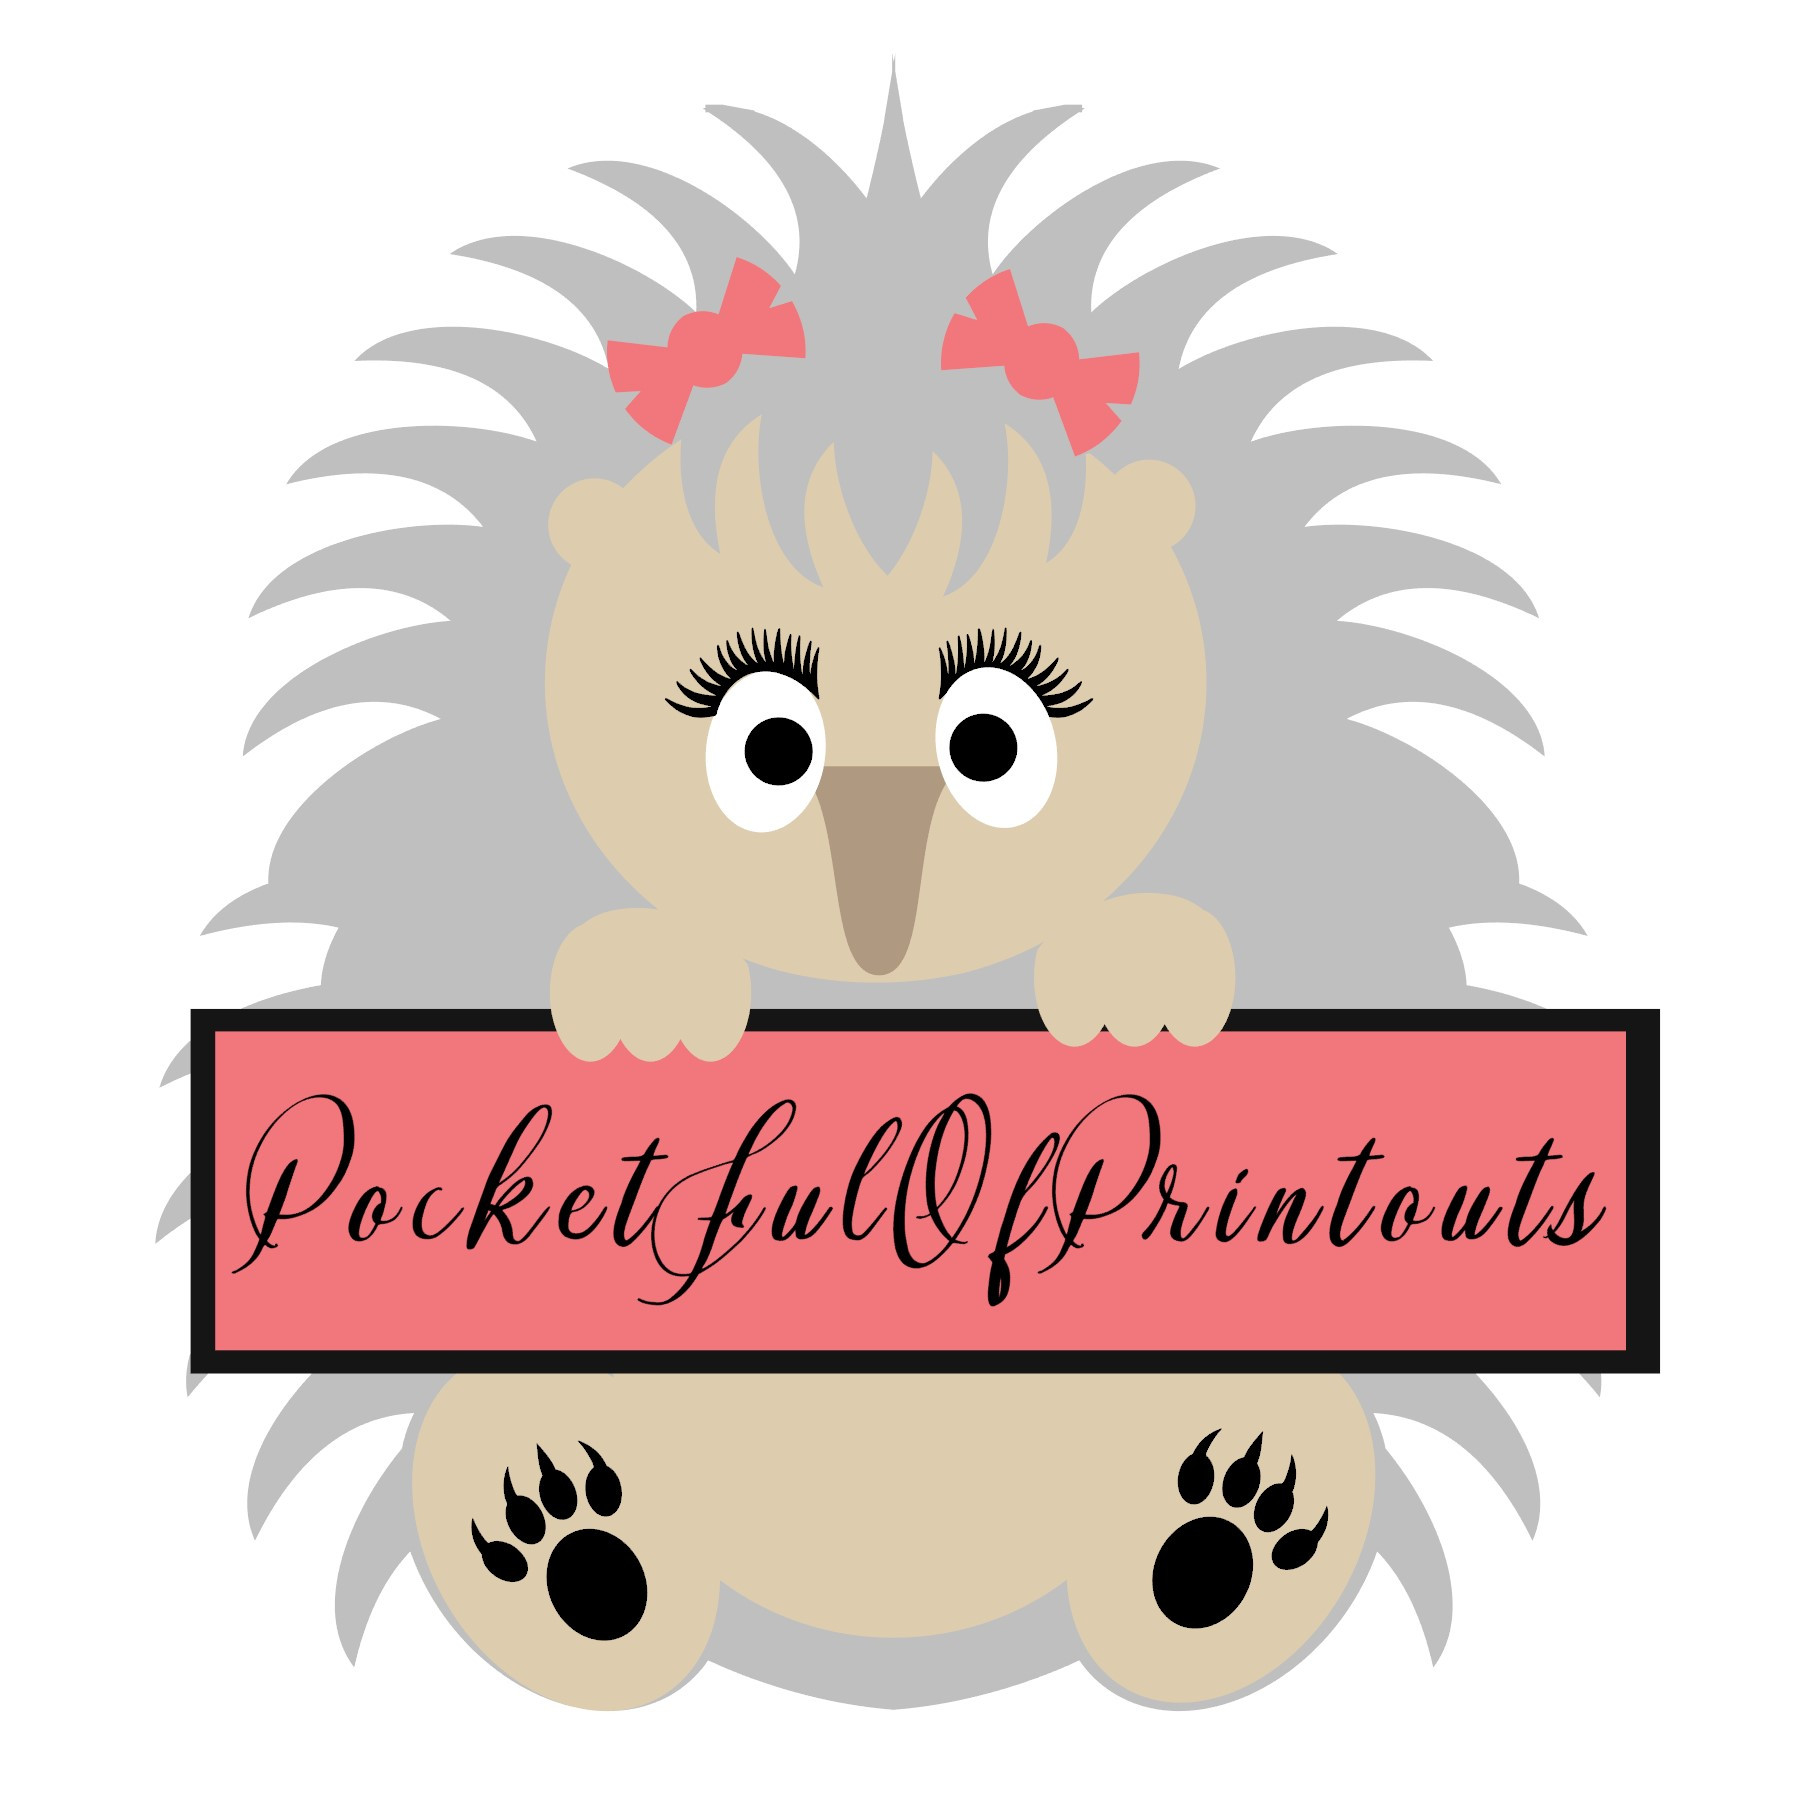 PocketFulOfPrintouts's profile picture